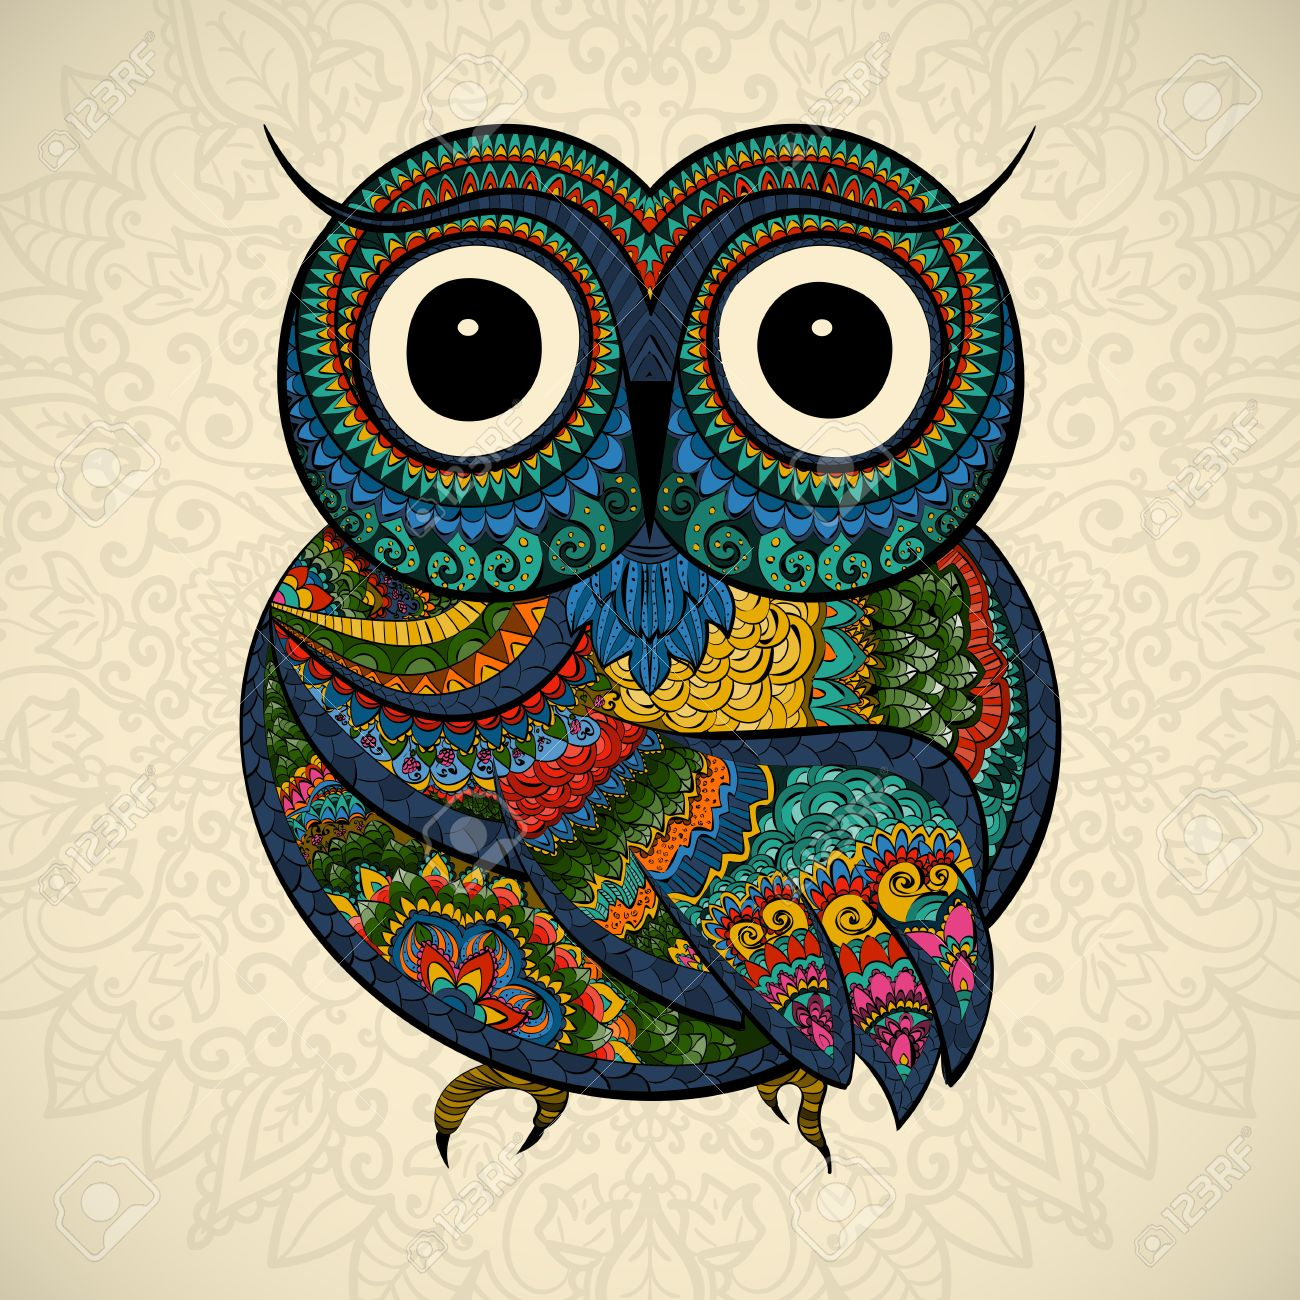 47401216-Vector-illustration-of-owl-Bird